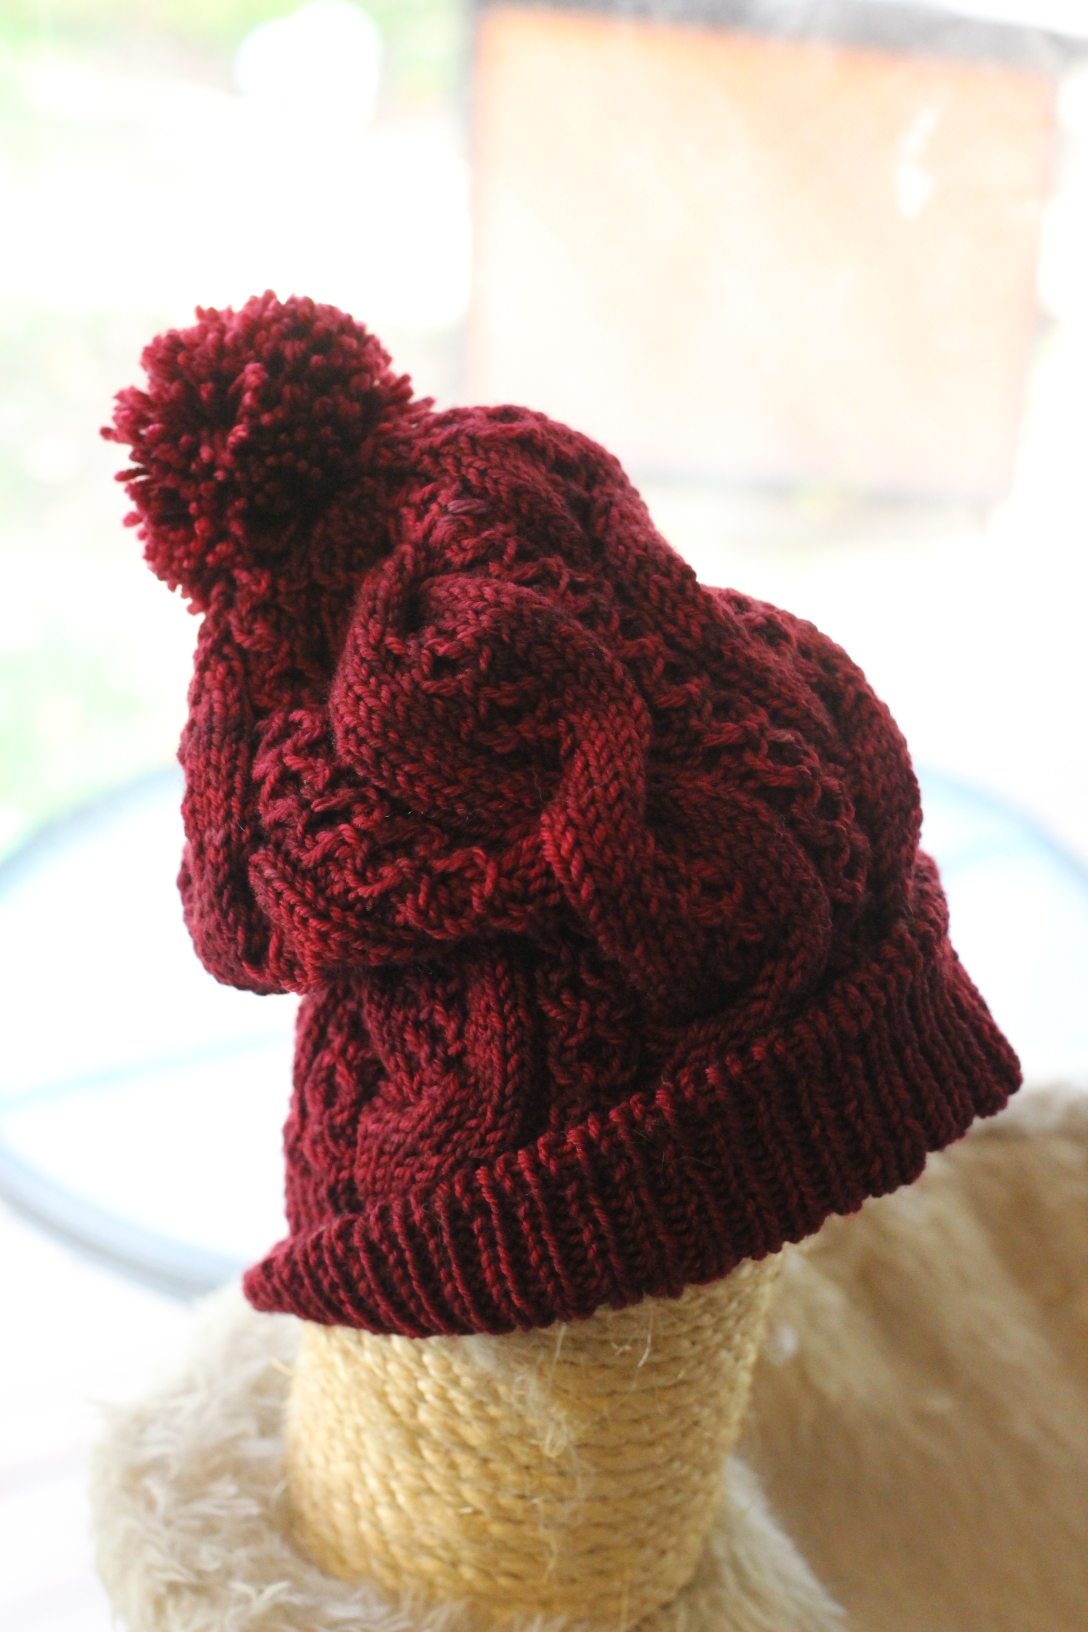 Tuque -- completed!